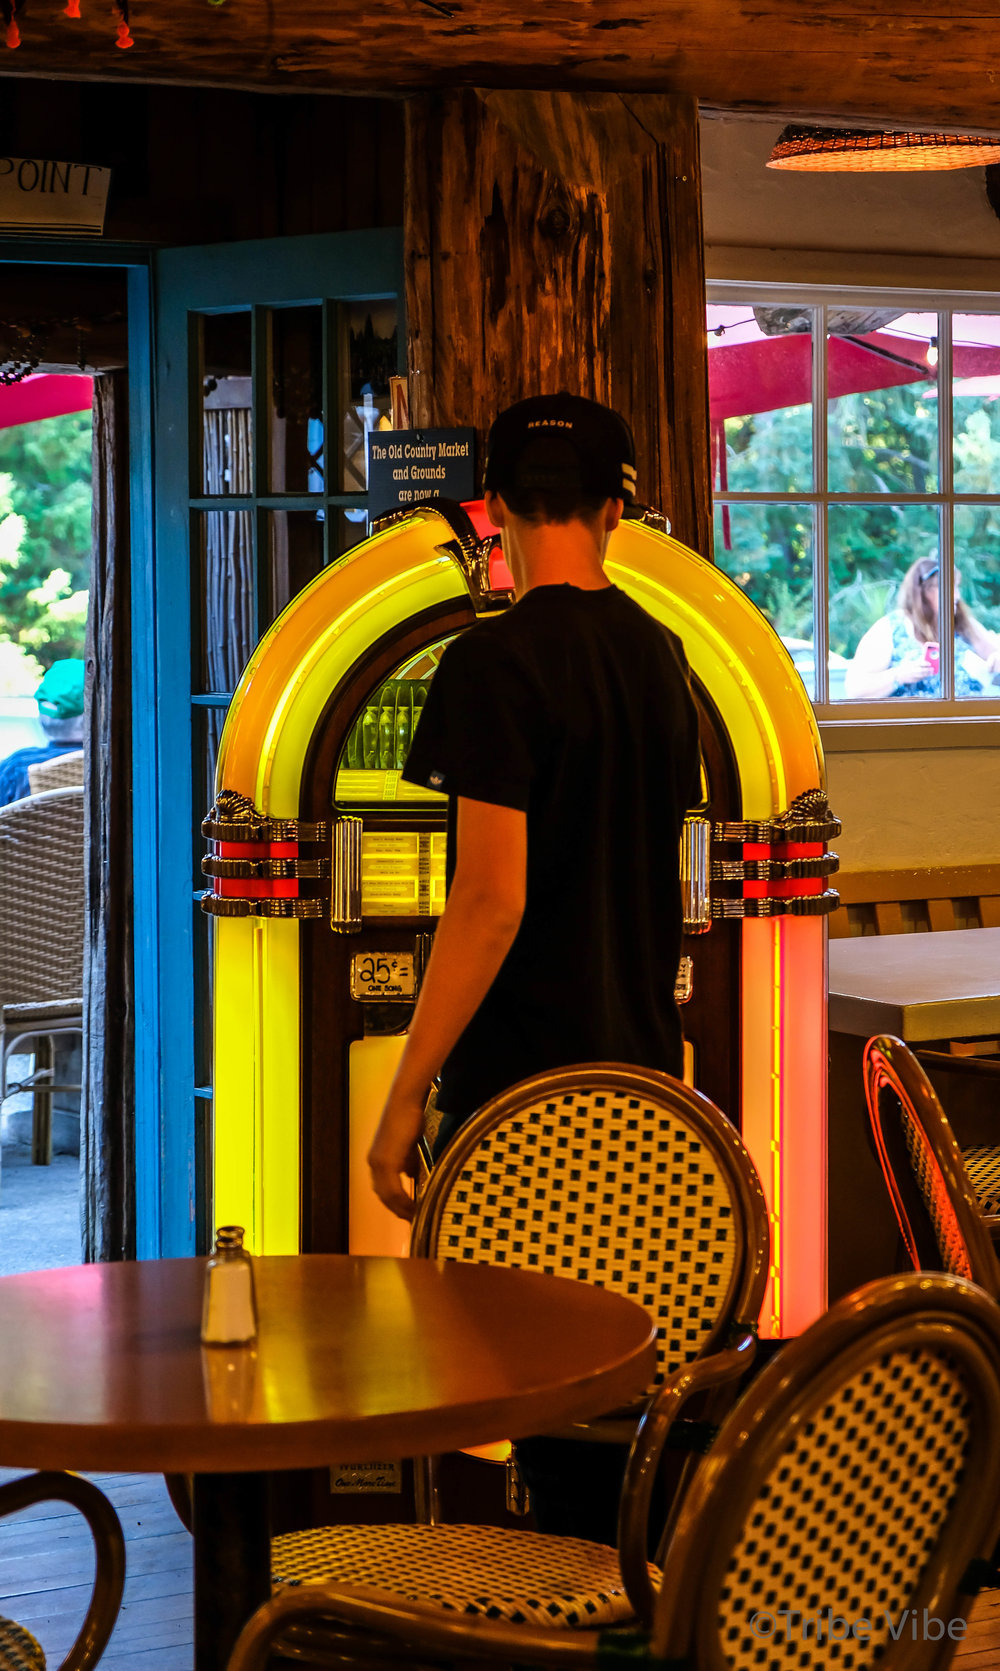 Learning how to work a Jukebox at the Coombs Old Country Market